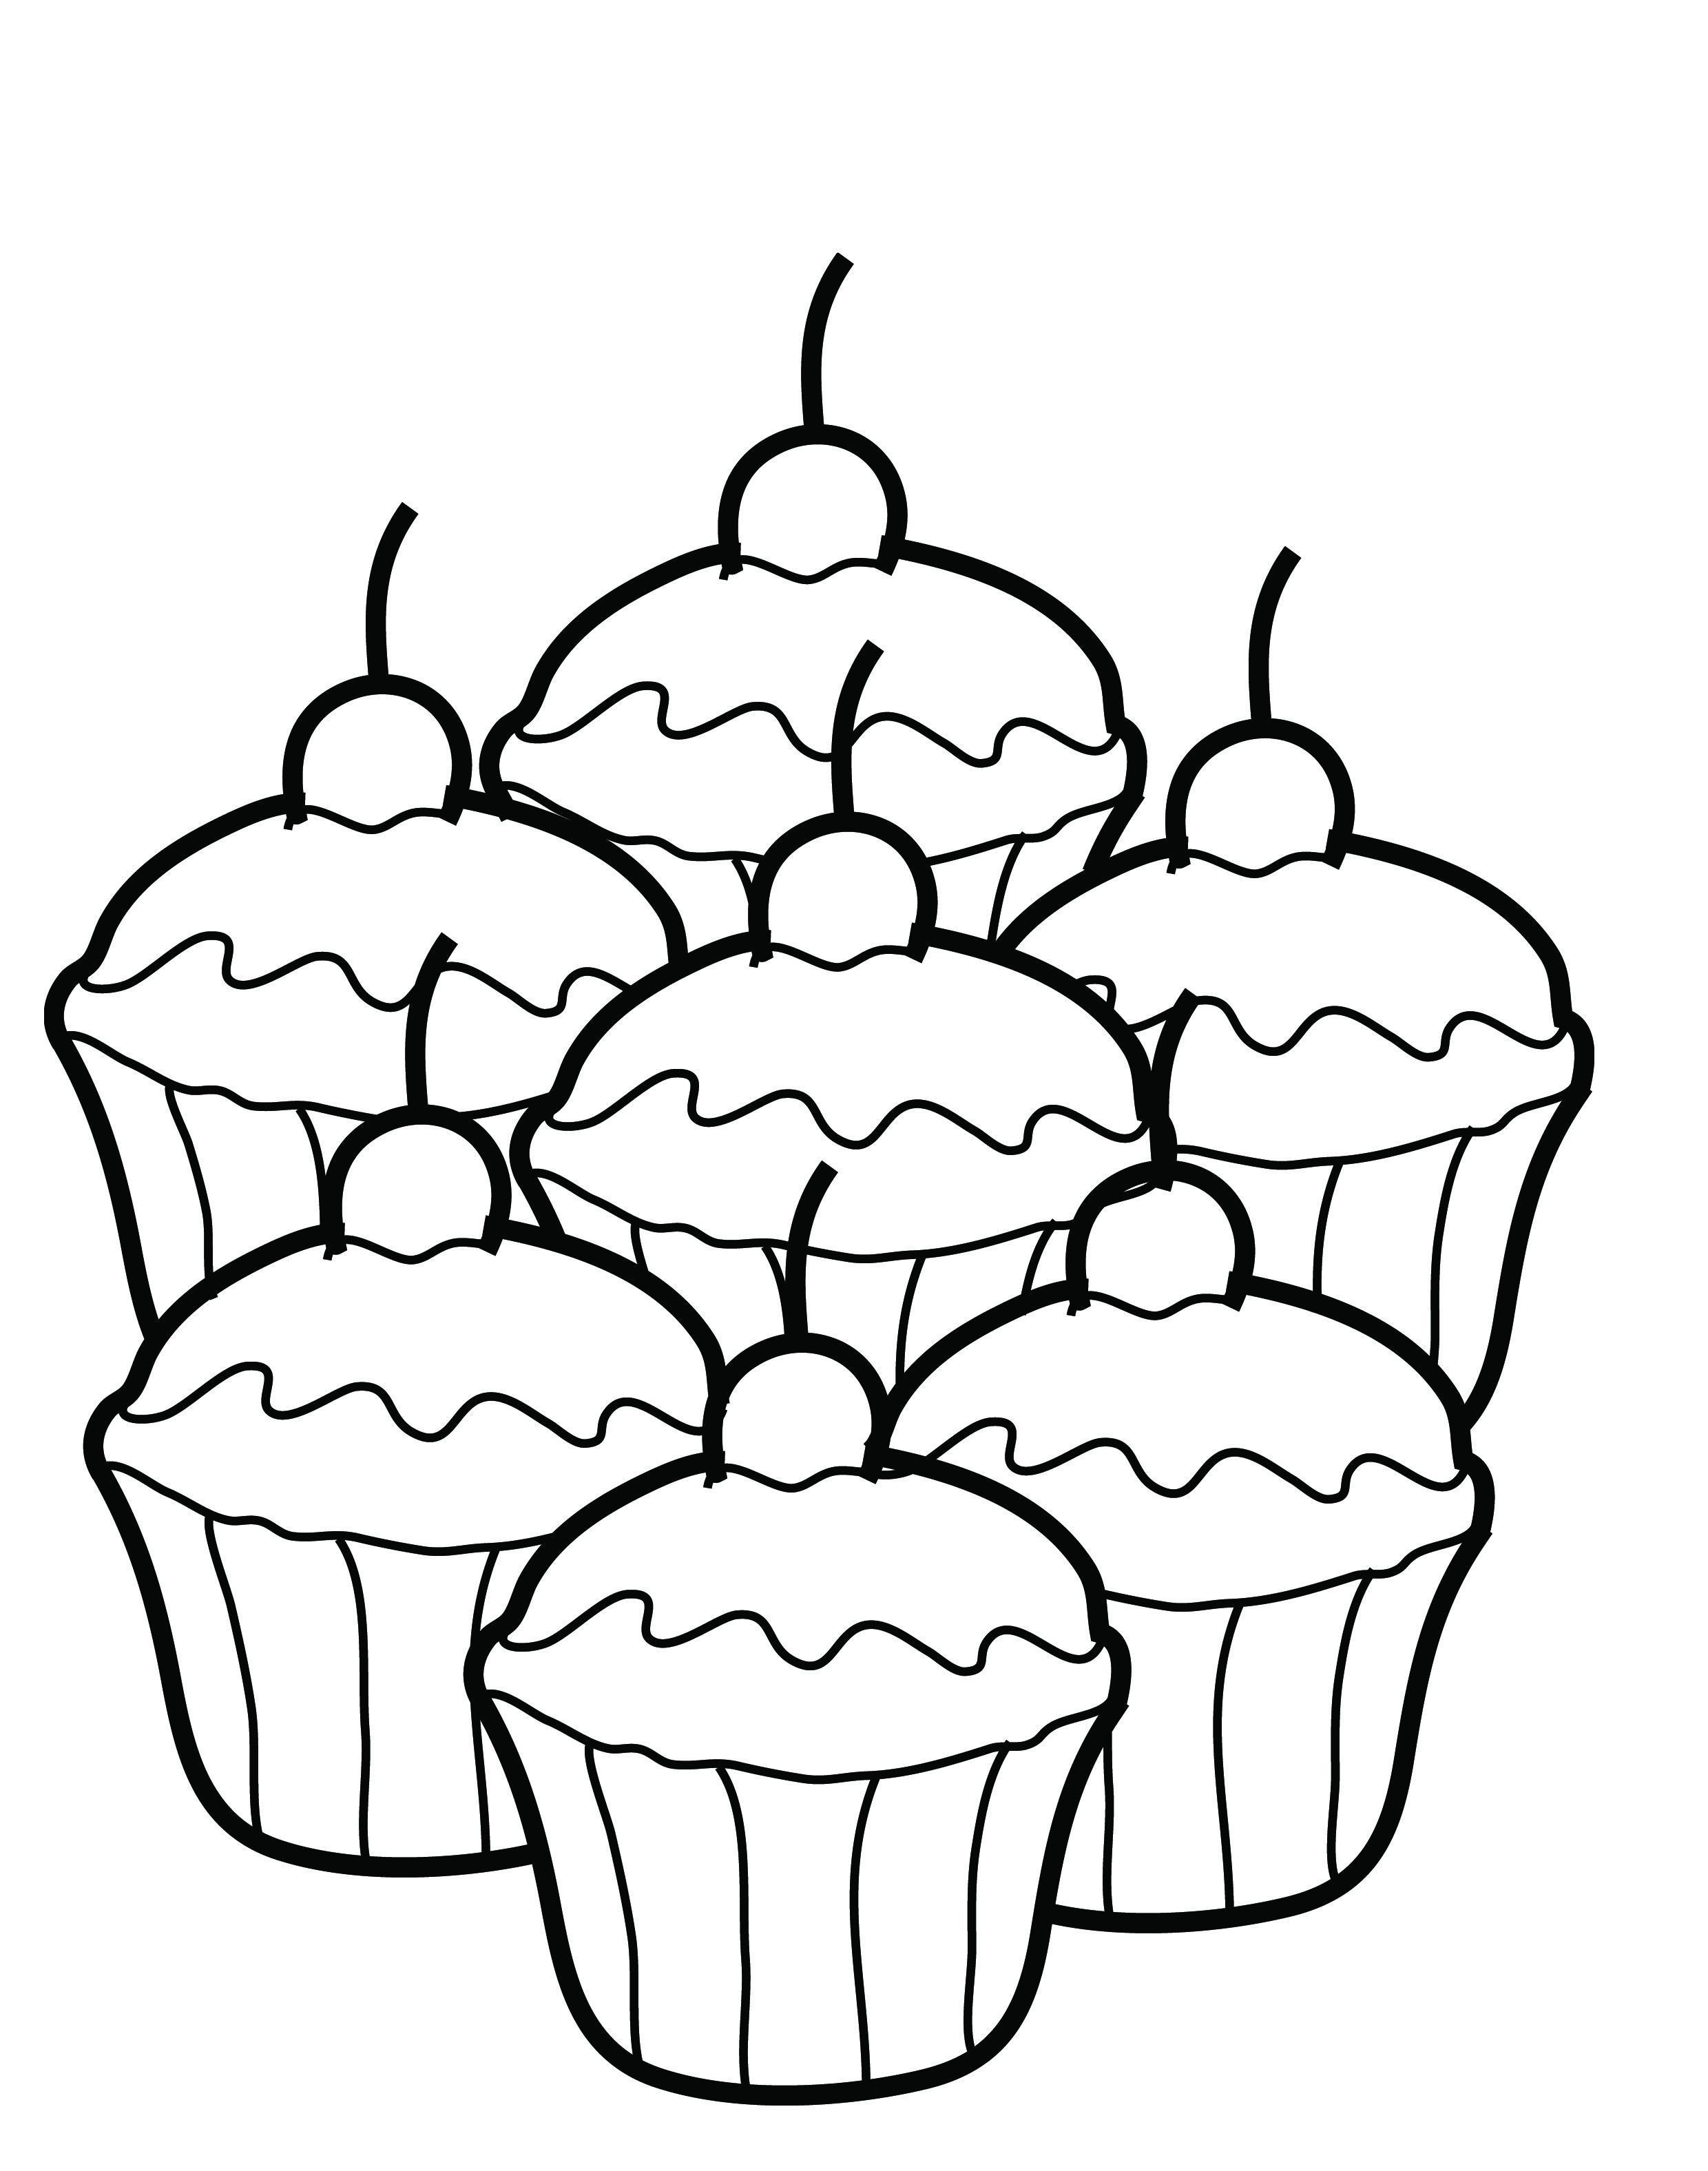 COLORING PAGES FOR KIDS Coloring Pages